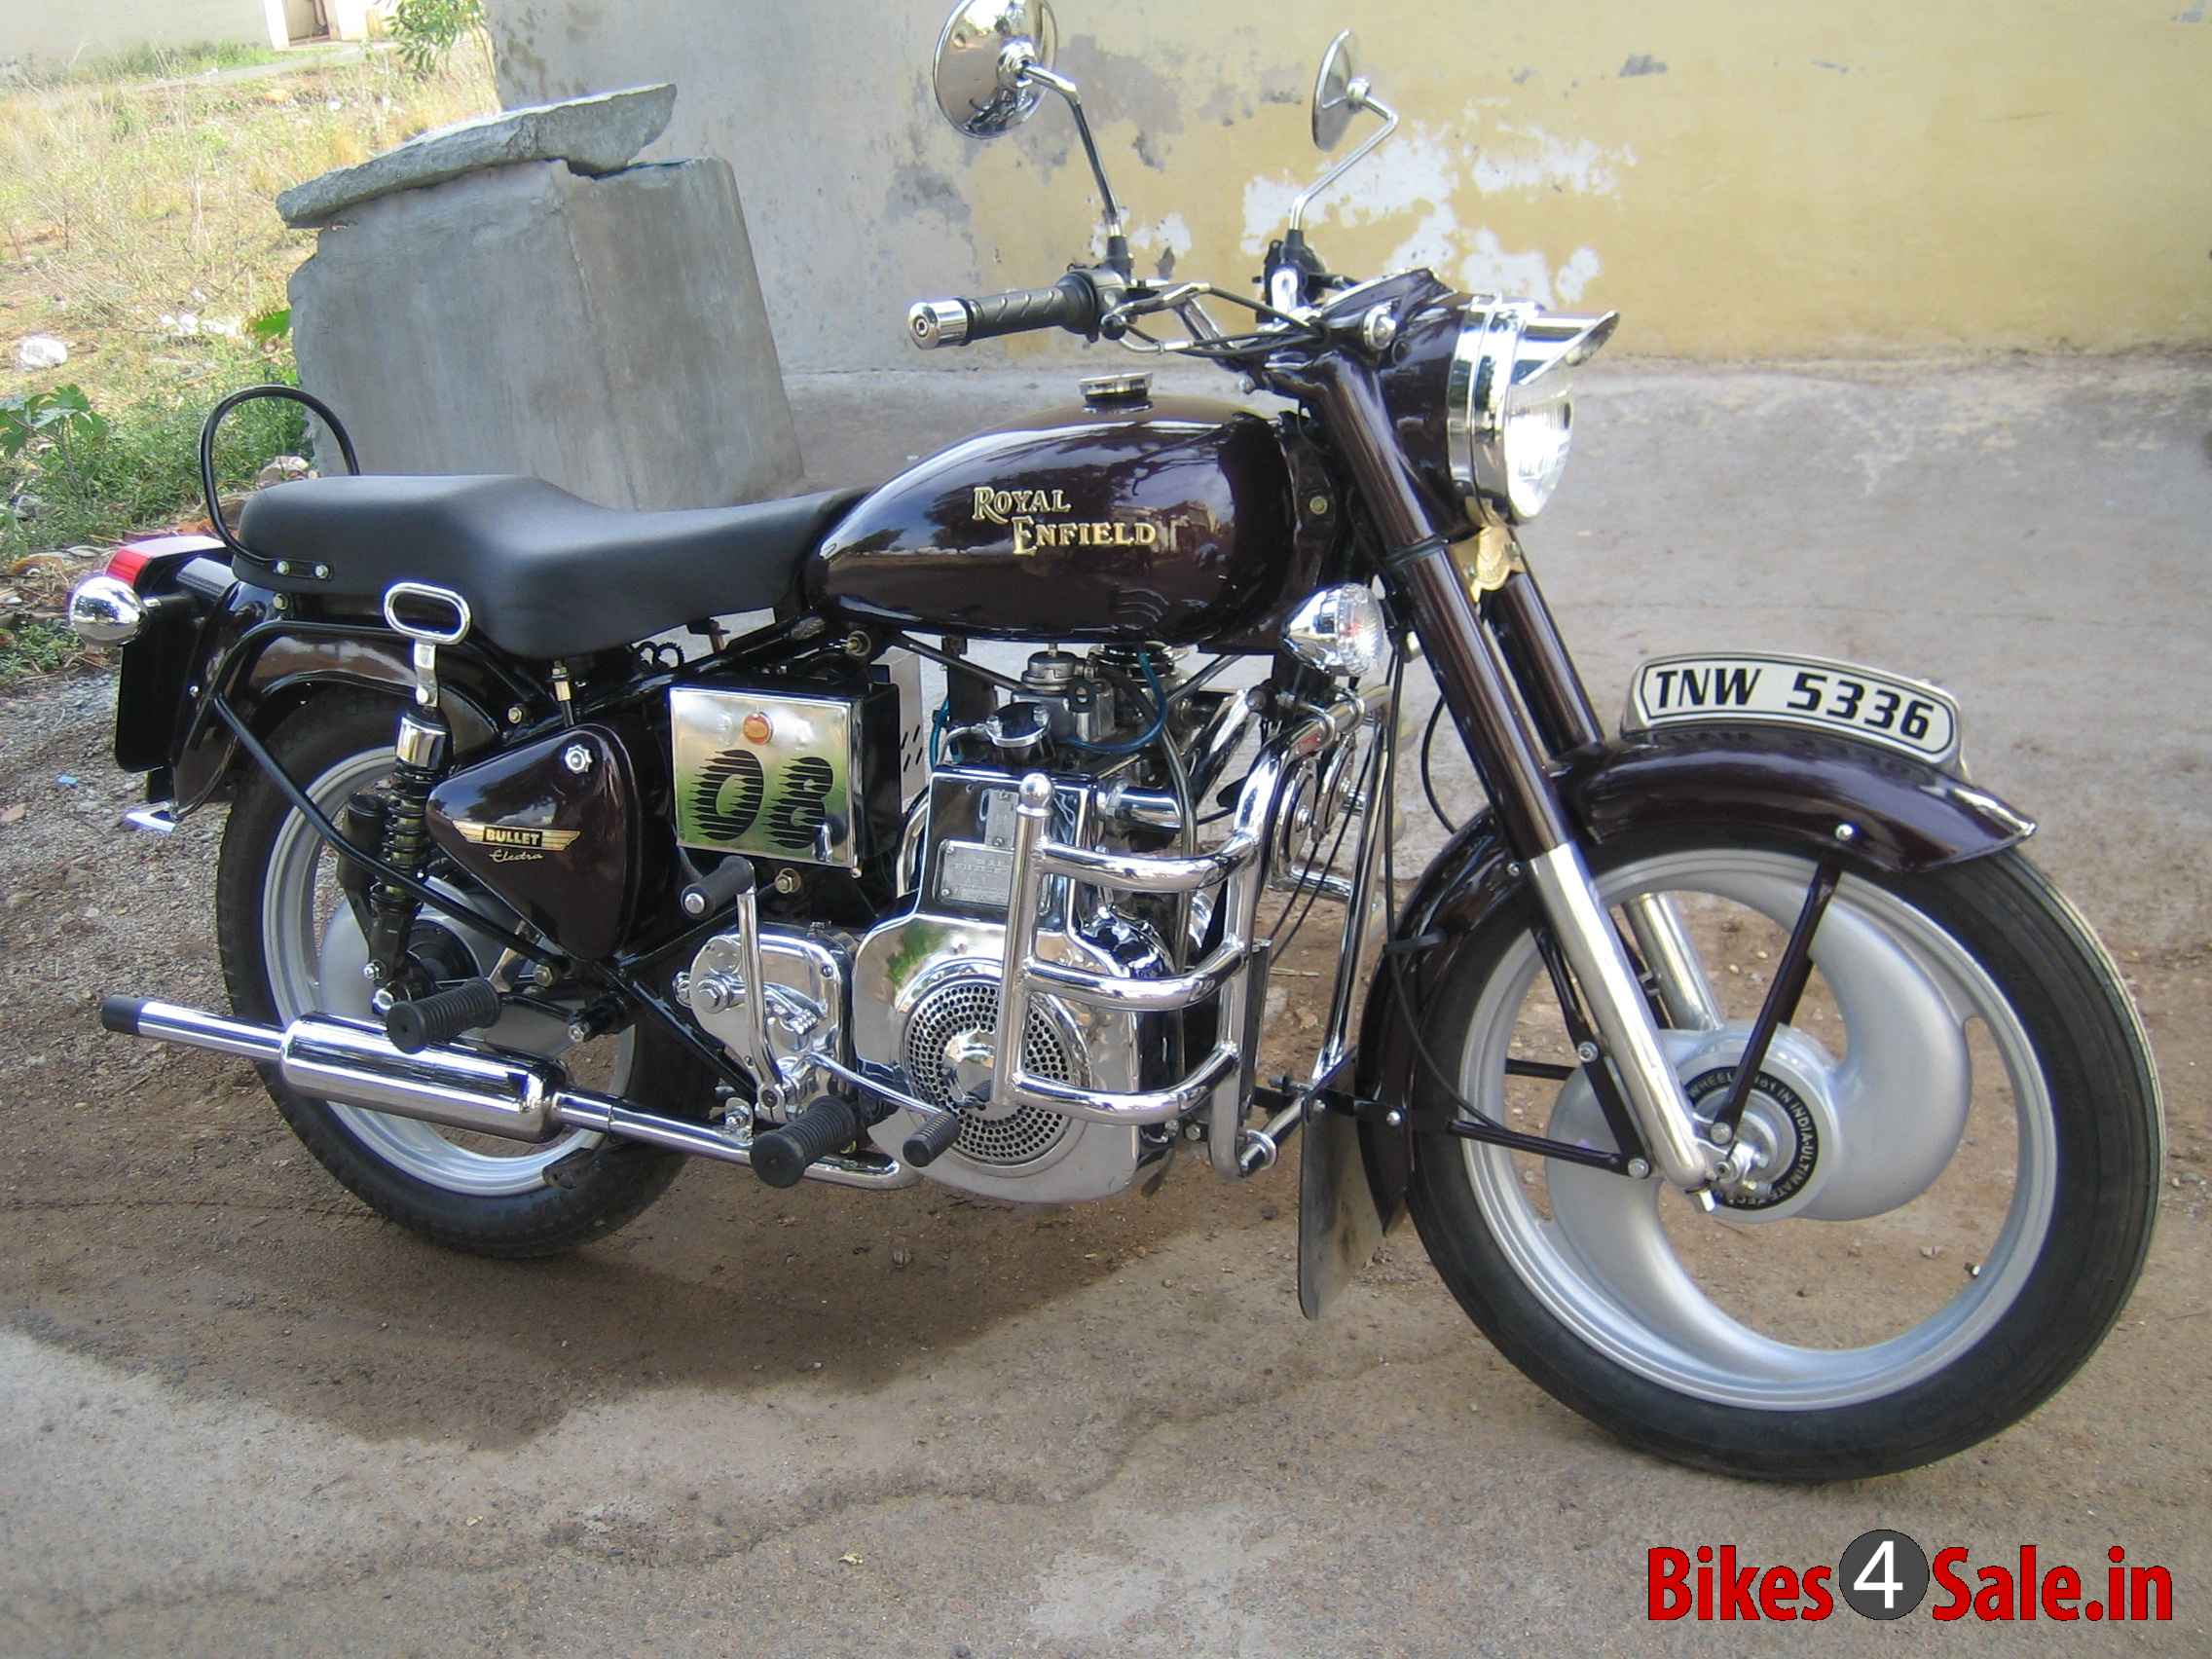 Royal Enfield Diesel images #125979